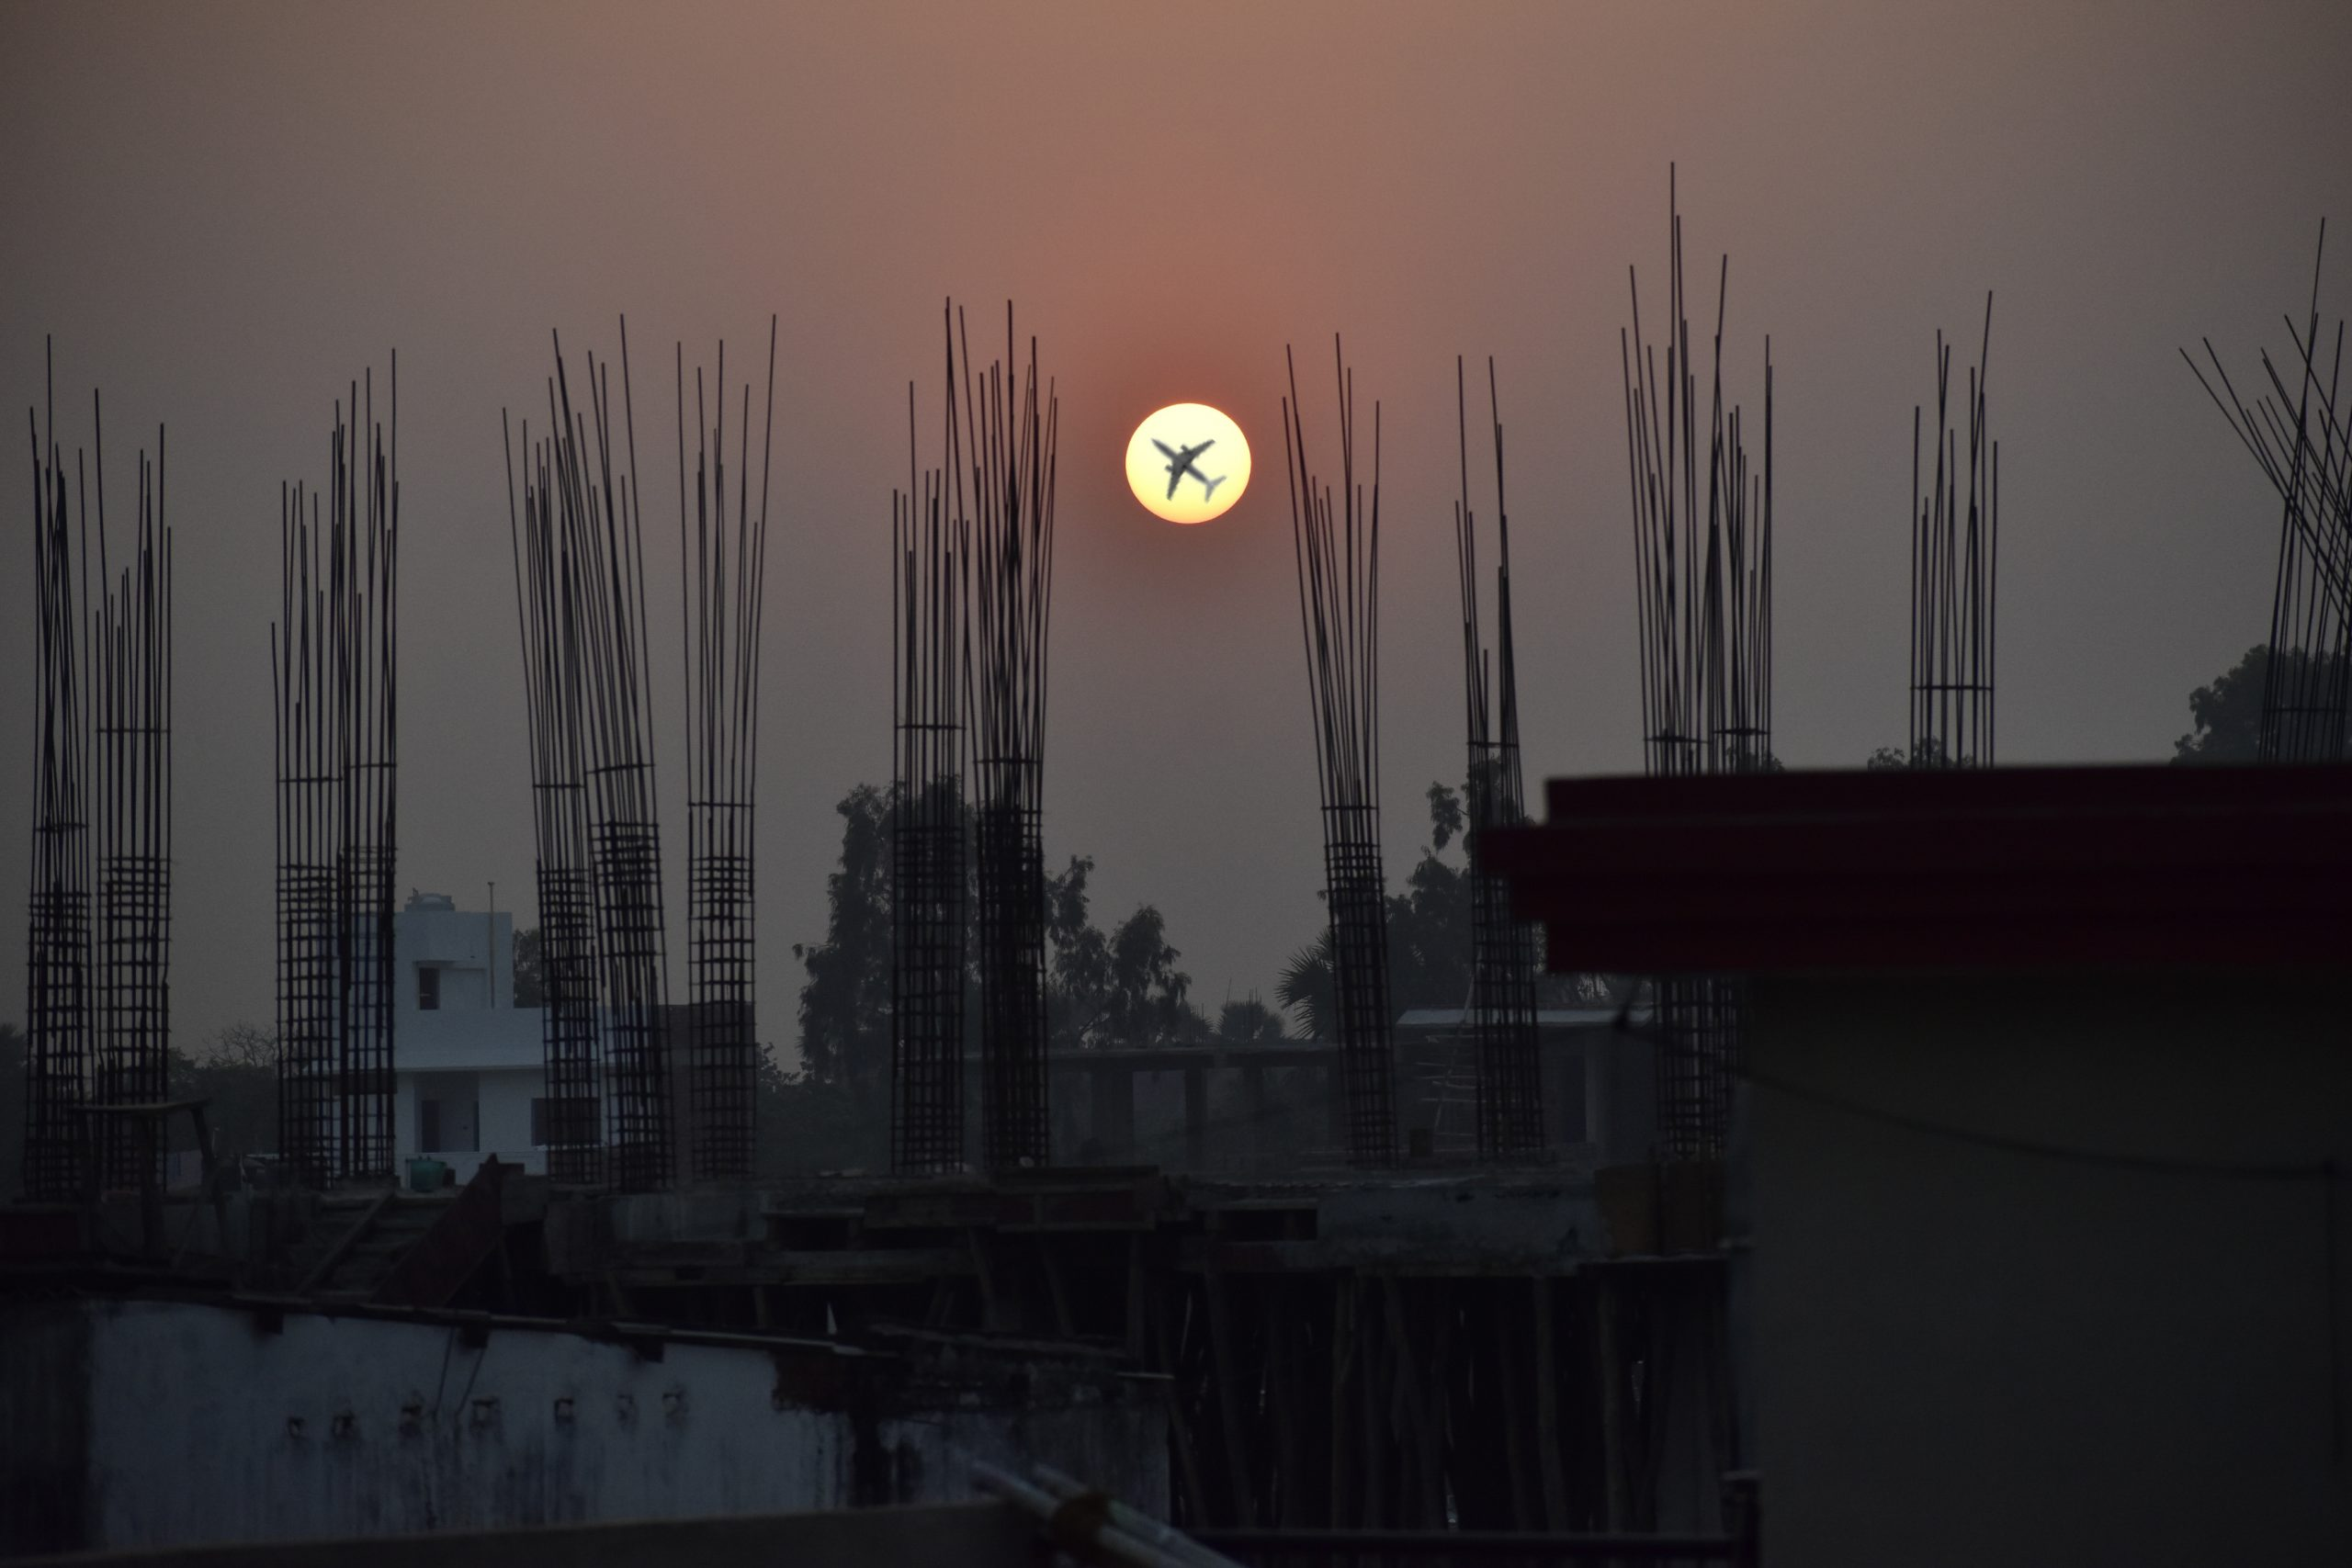 An airplane crossing by the Sun